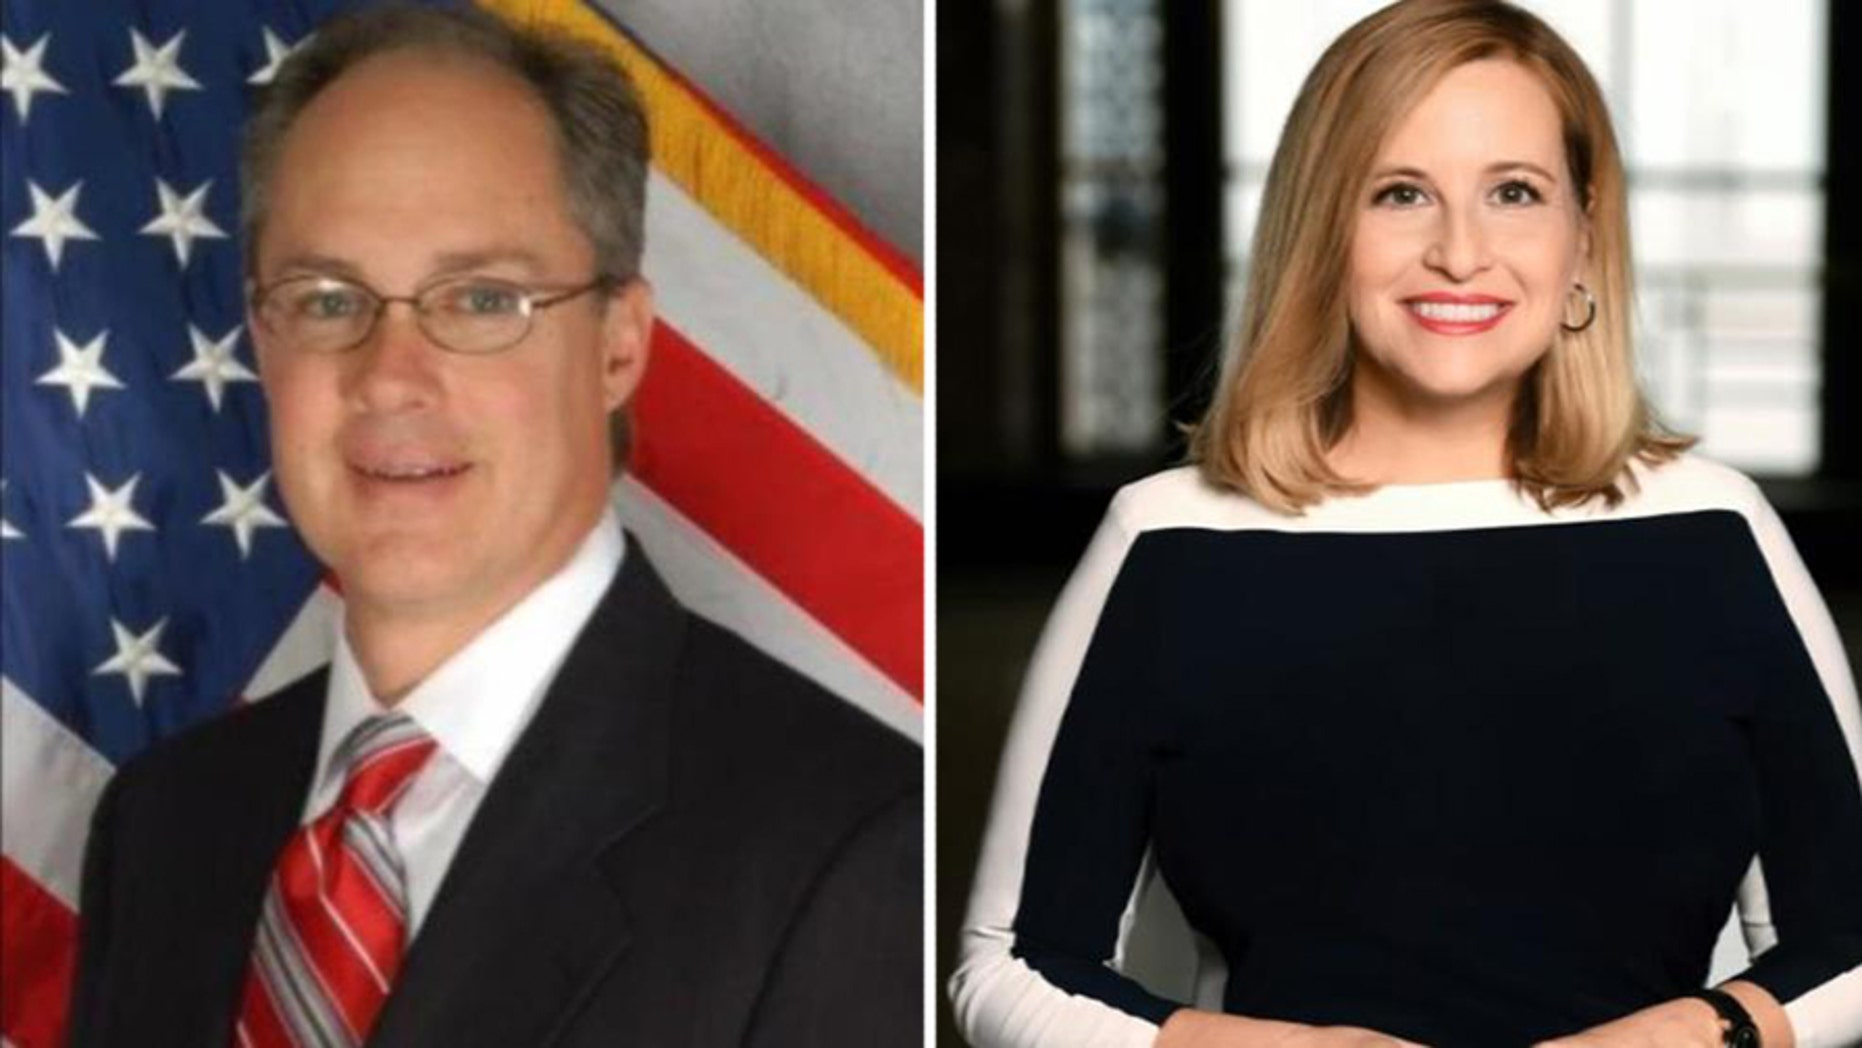 Megan Barry admitted to having an extramarital affair with the former head of her security detail, Sgt. Robert Forrest, left, when she was mayor of Nashville.  (Fox 17)